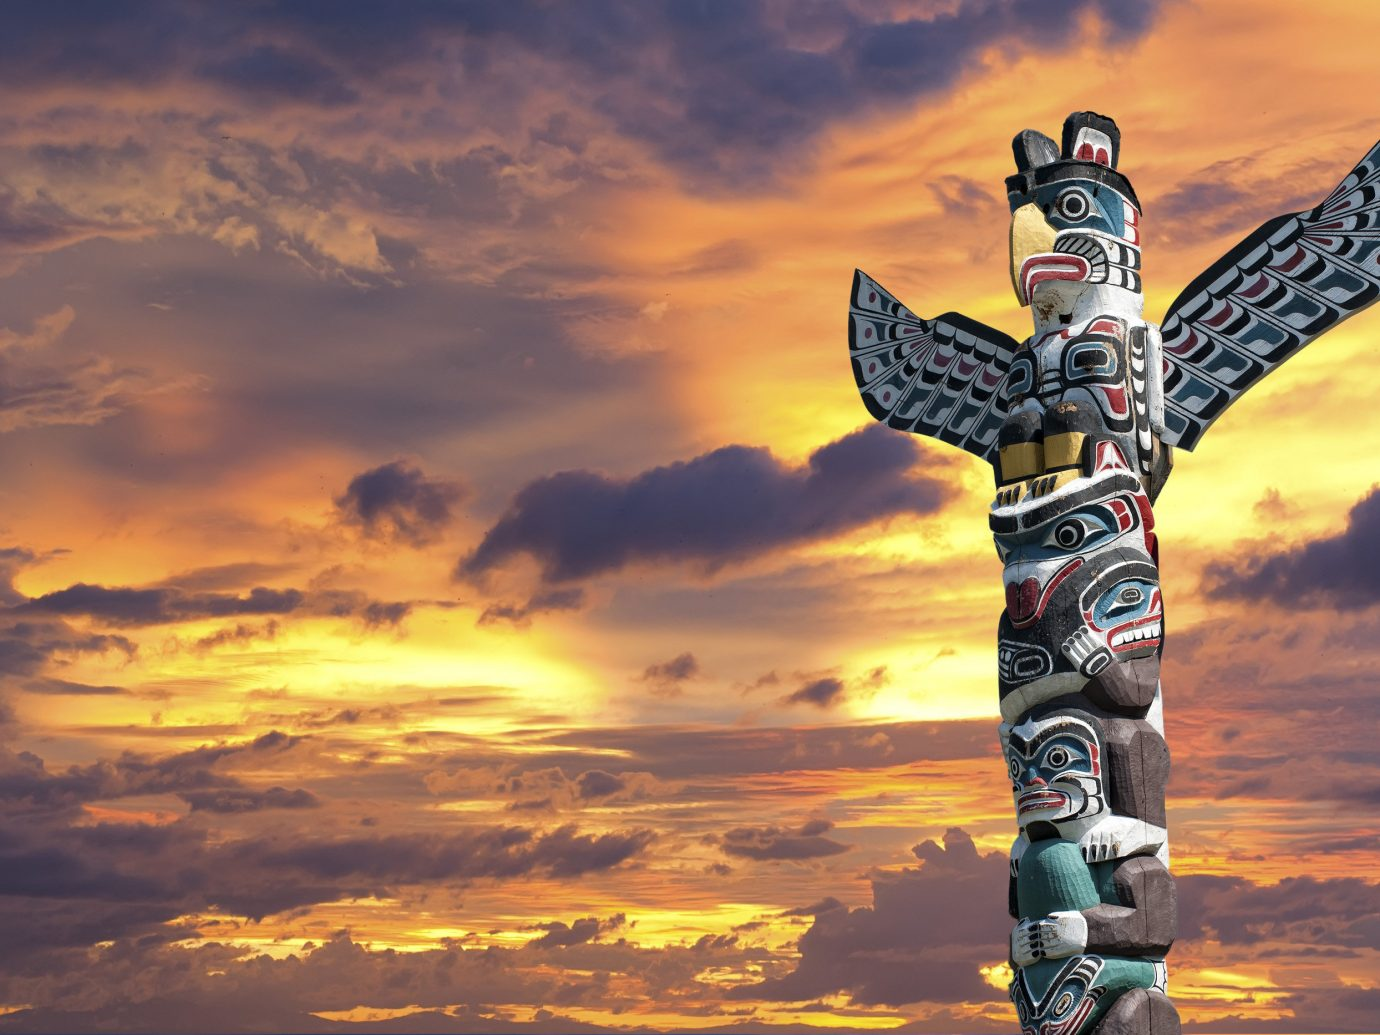 Trip Ideas sky outdoor object totem pole outdoor Sunset cloud cloudy clouds evening air sunrise dusk